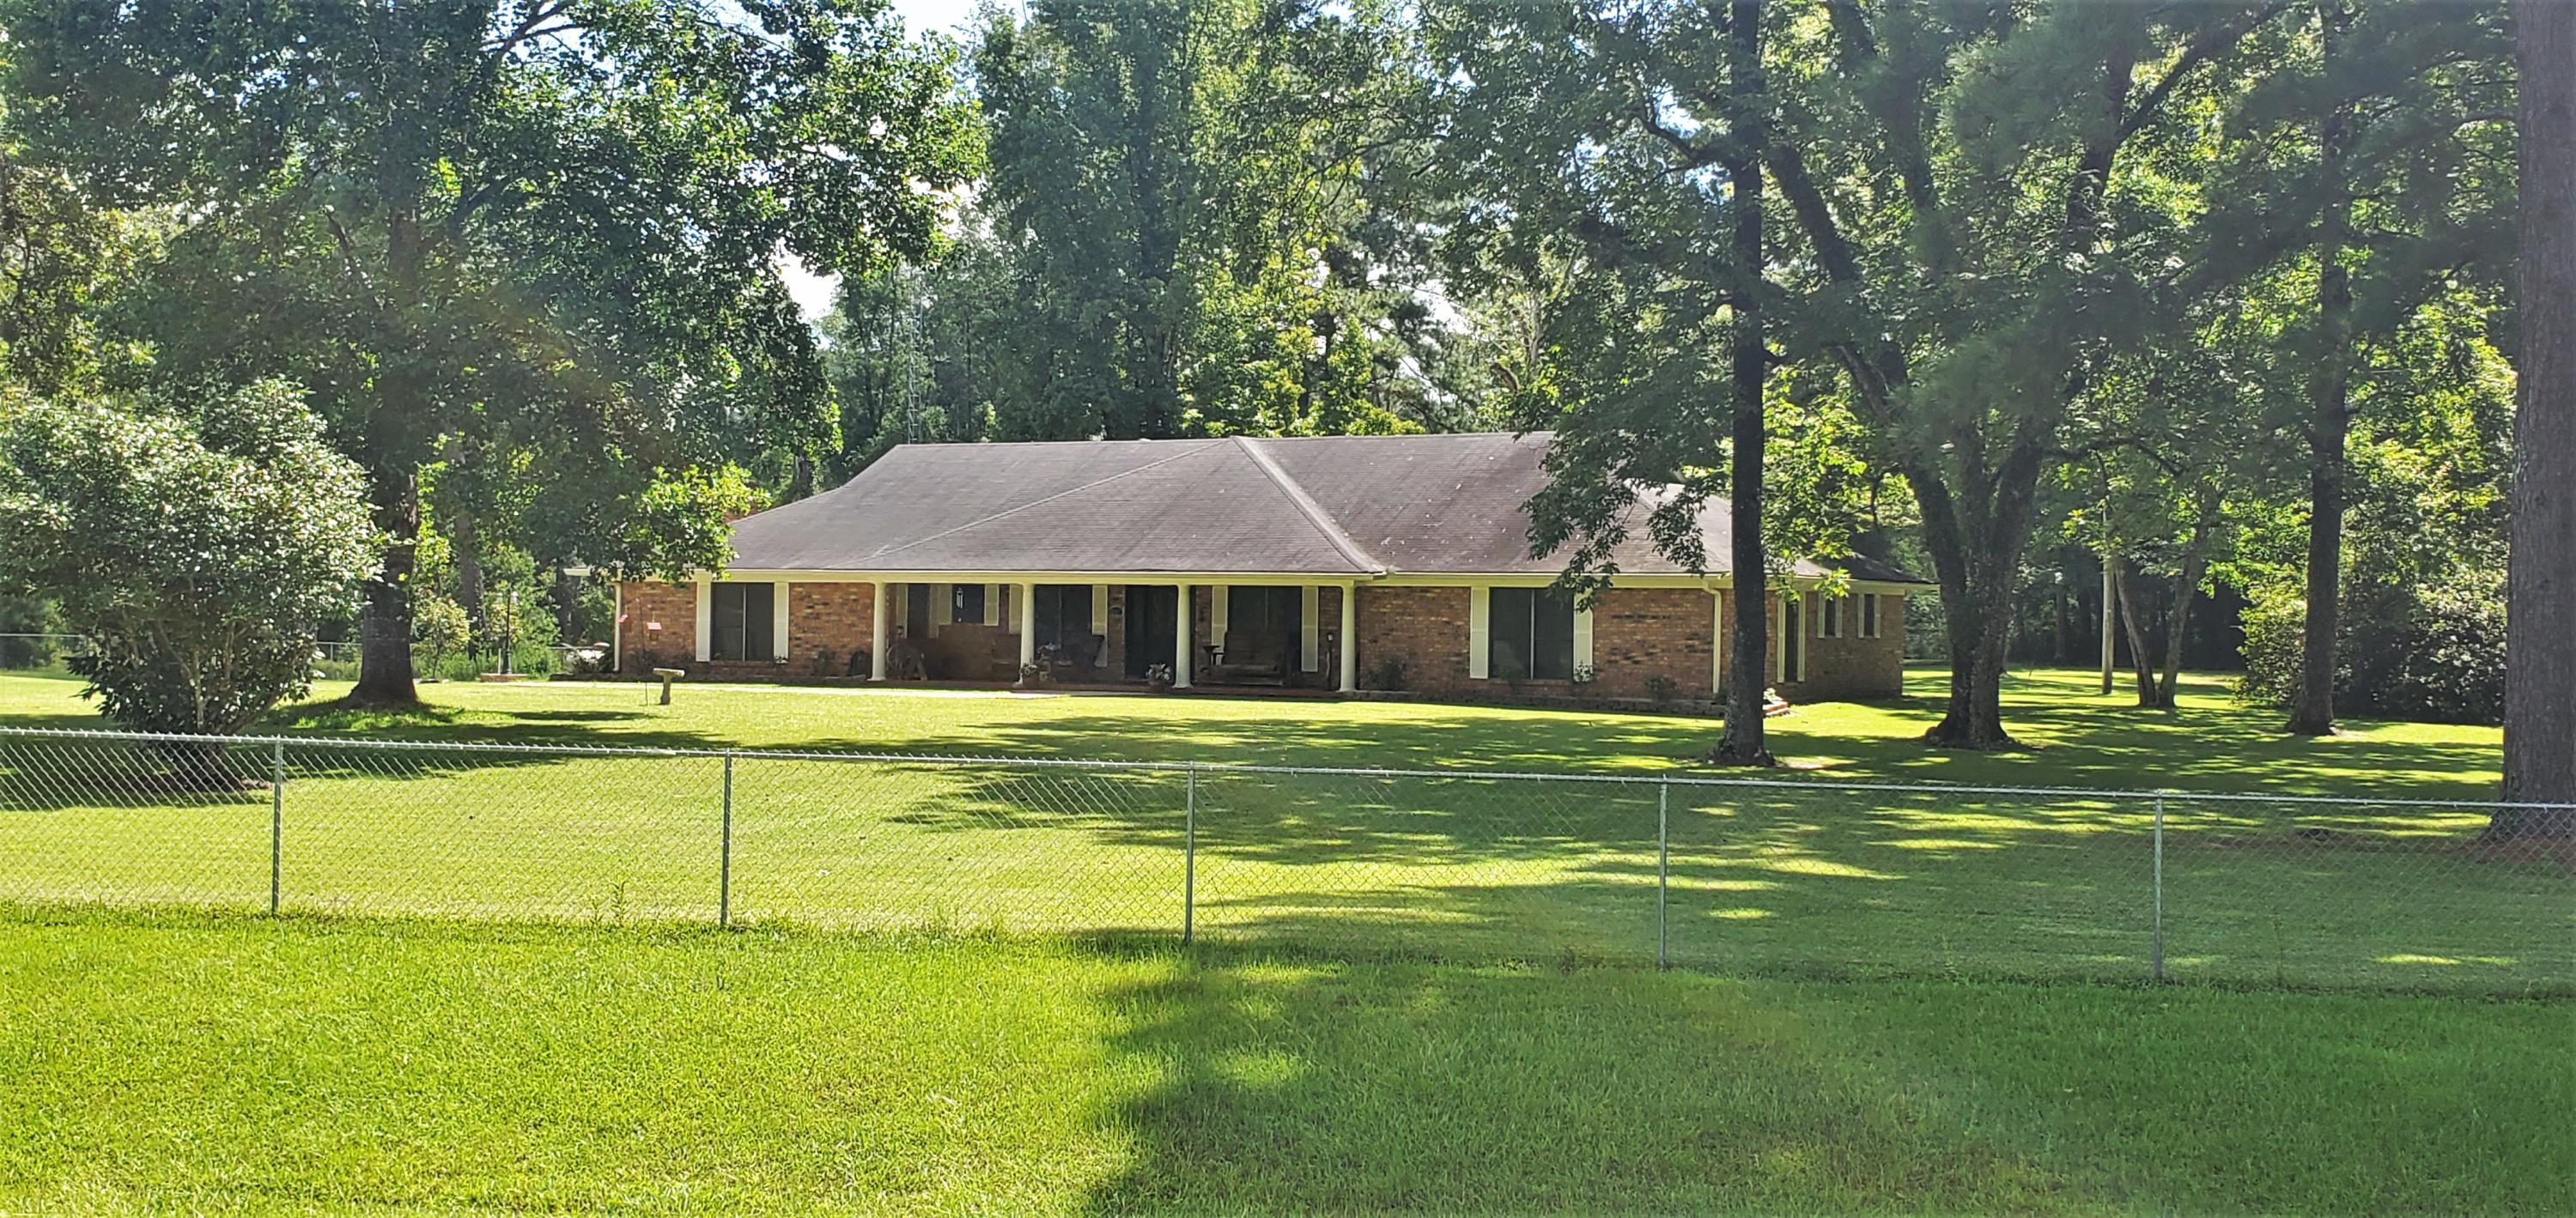 Simpson home for sale, 1201 HWY 8, Simpson LA - $280,000